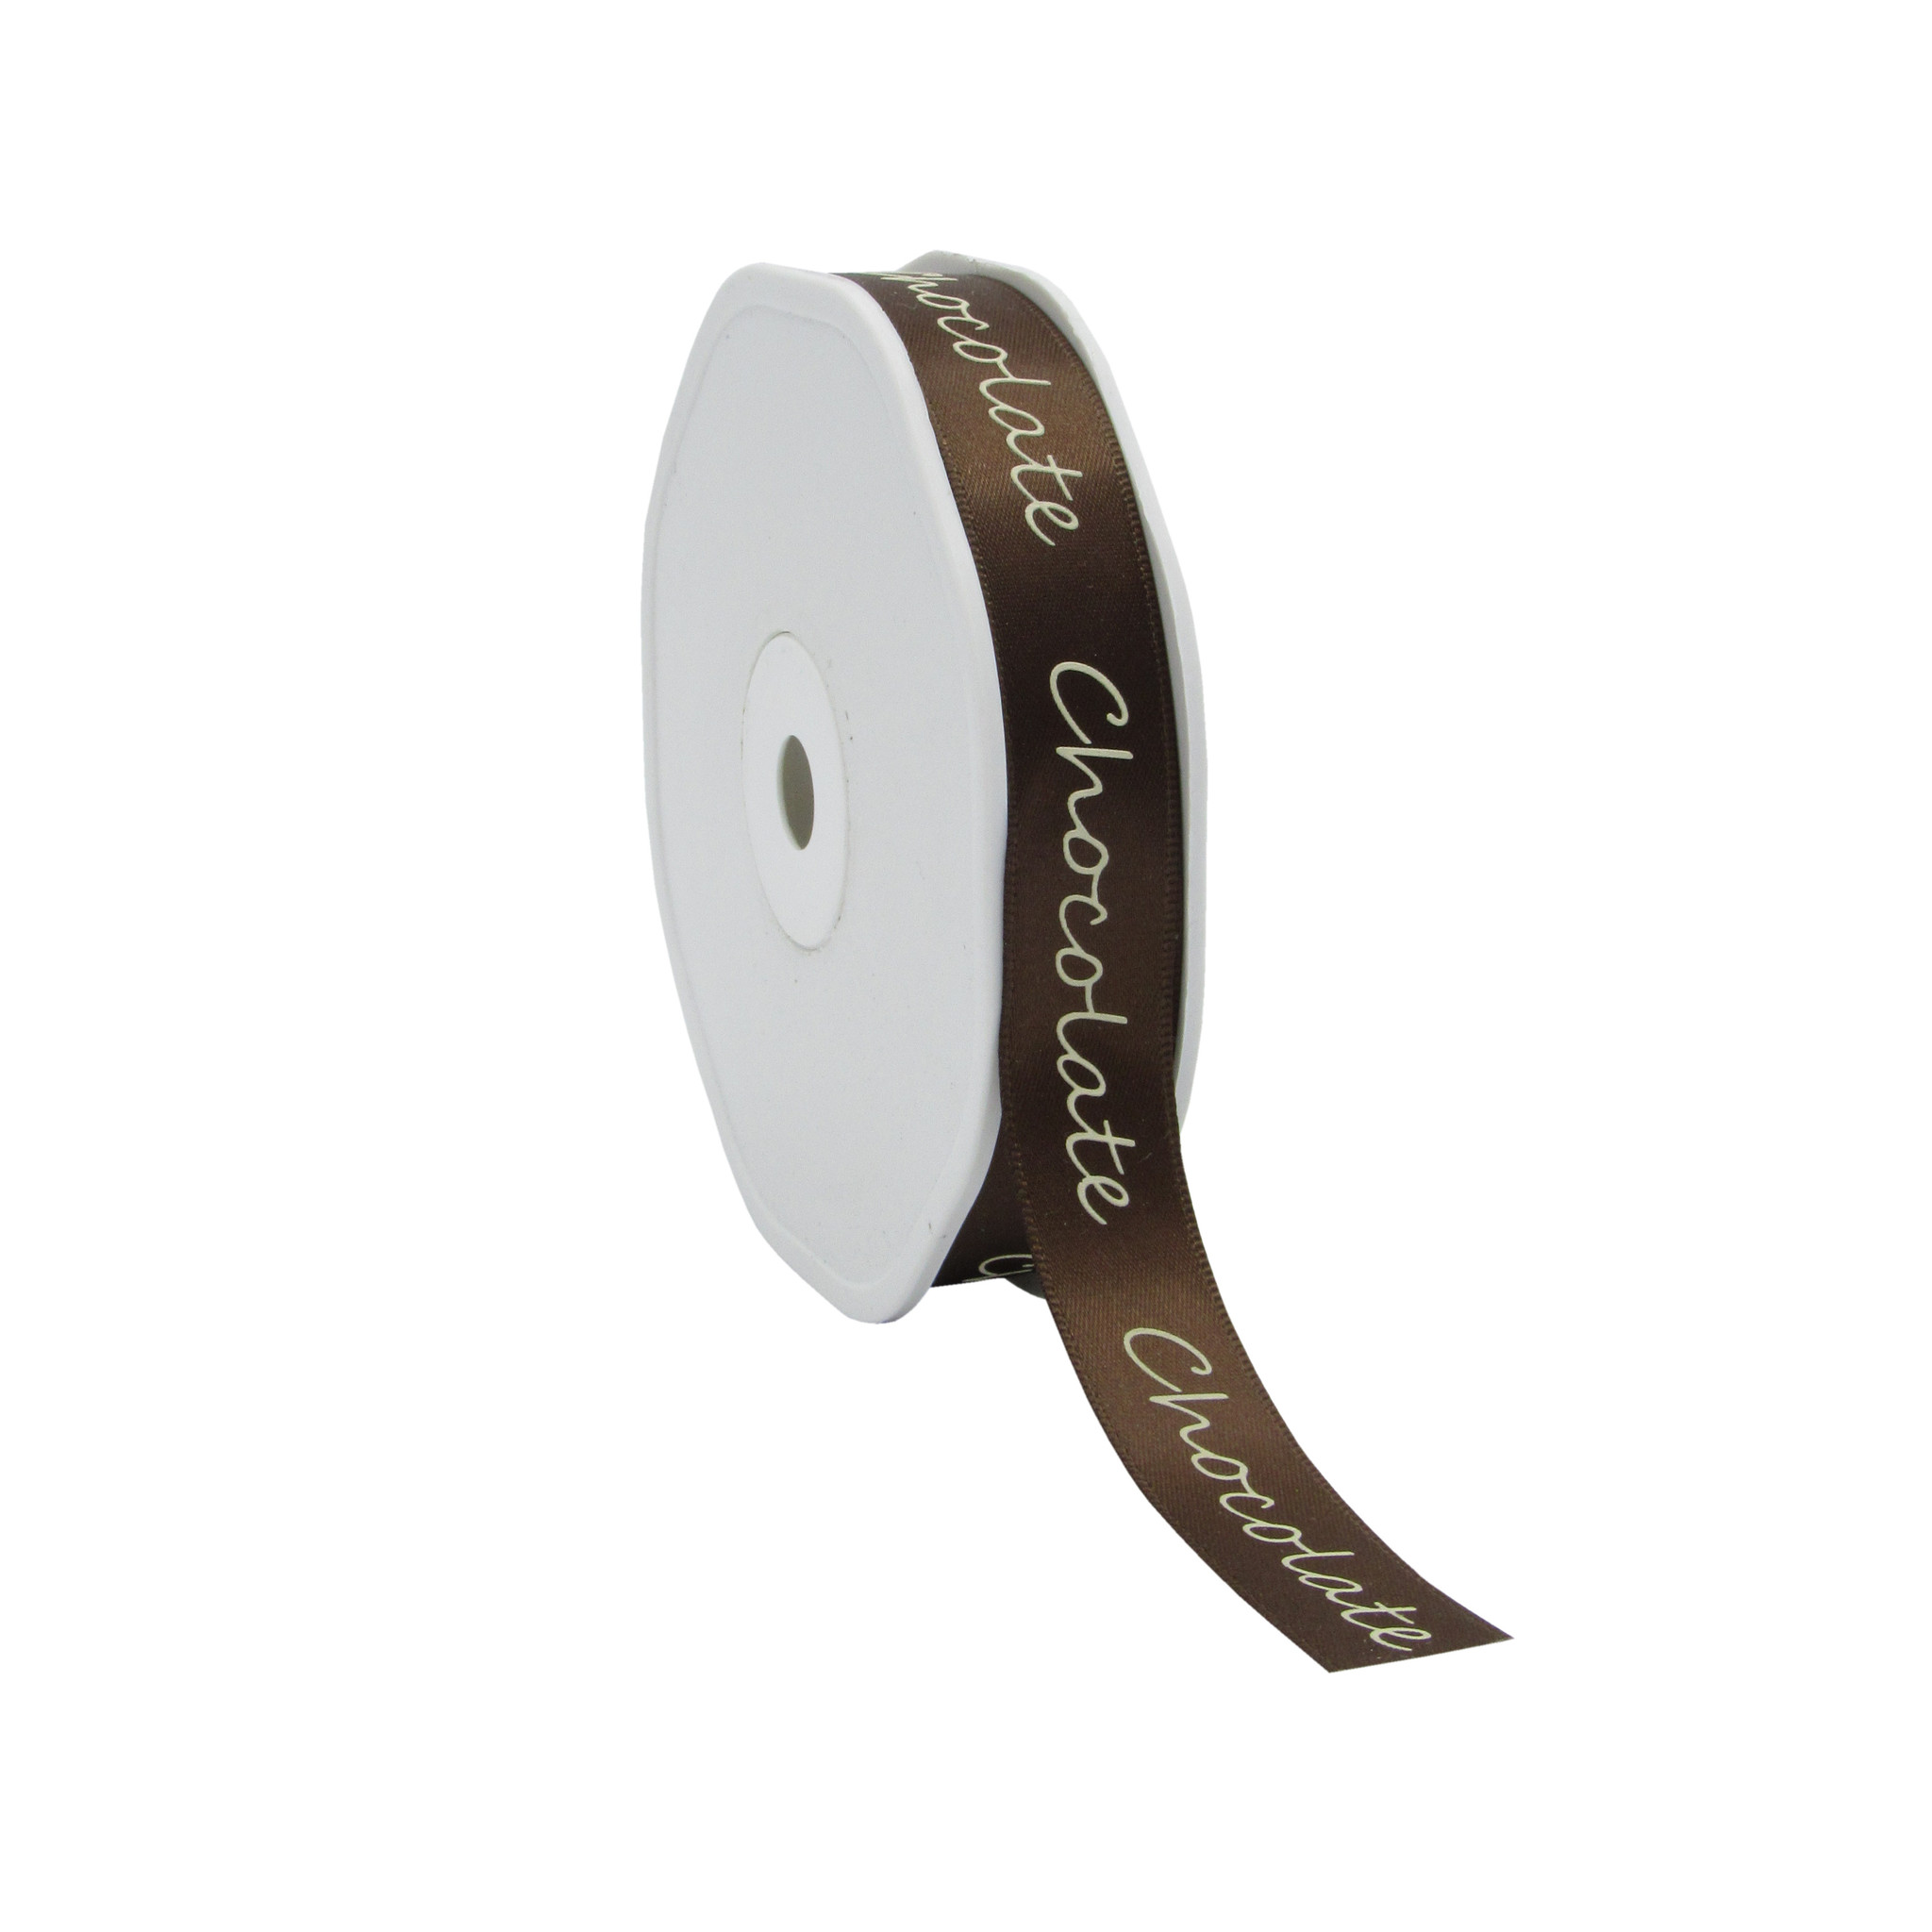 "Single face satin ribbon ""Chocolate"" - chocolate brown - 15 mm - 25 m"